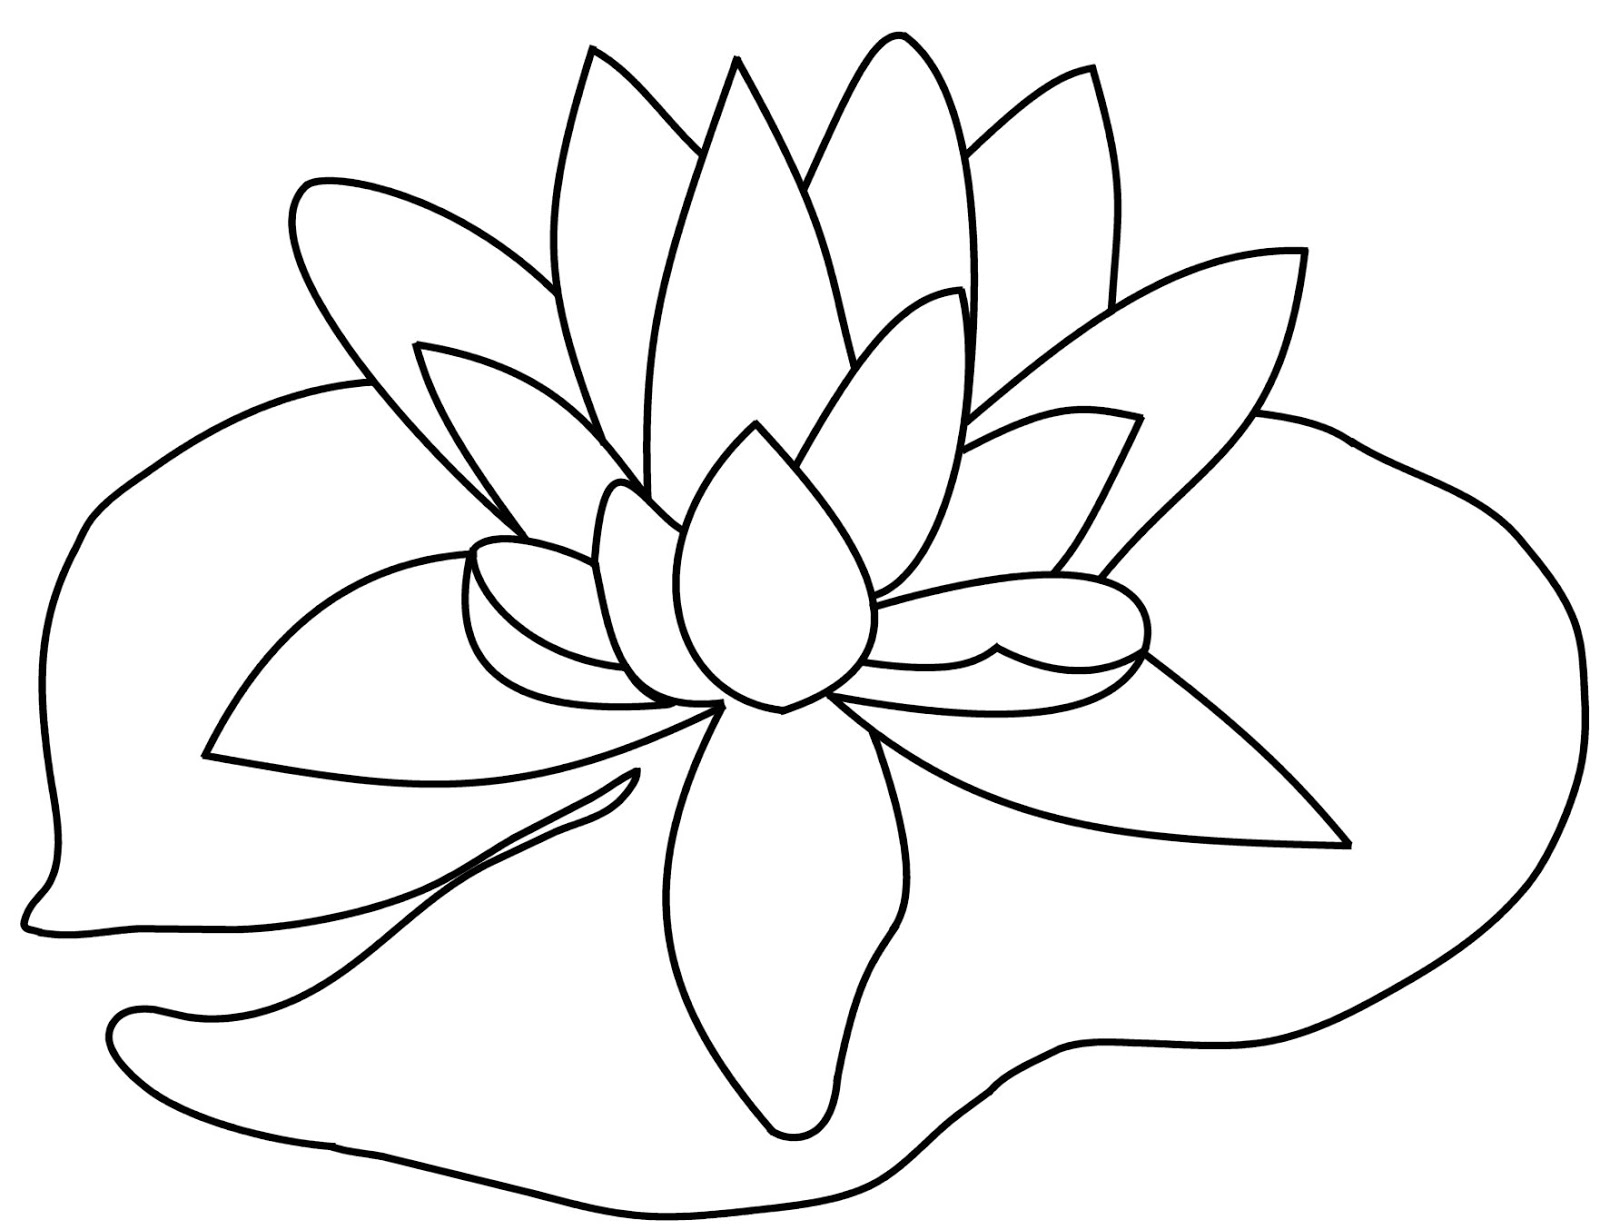 1600x1230 Coloring Pages Appealing Lily Pad Coloring Pages Bcgrgg6xi Lily